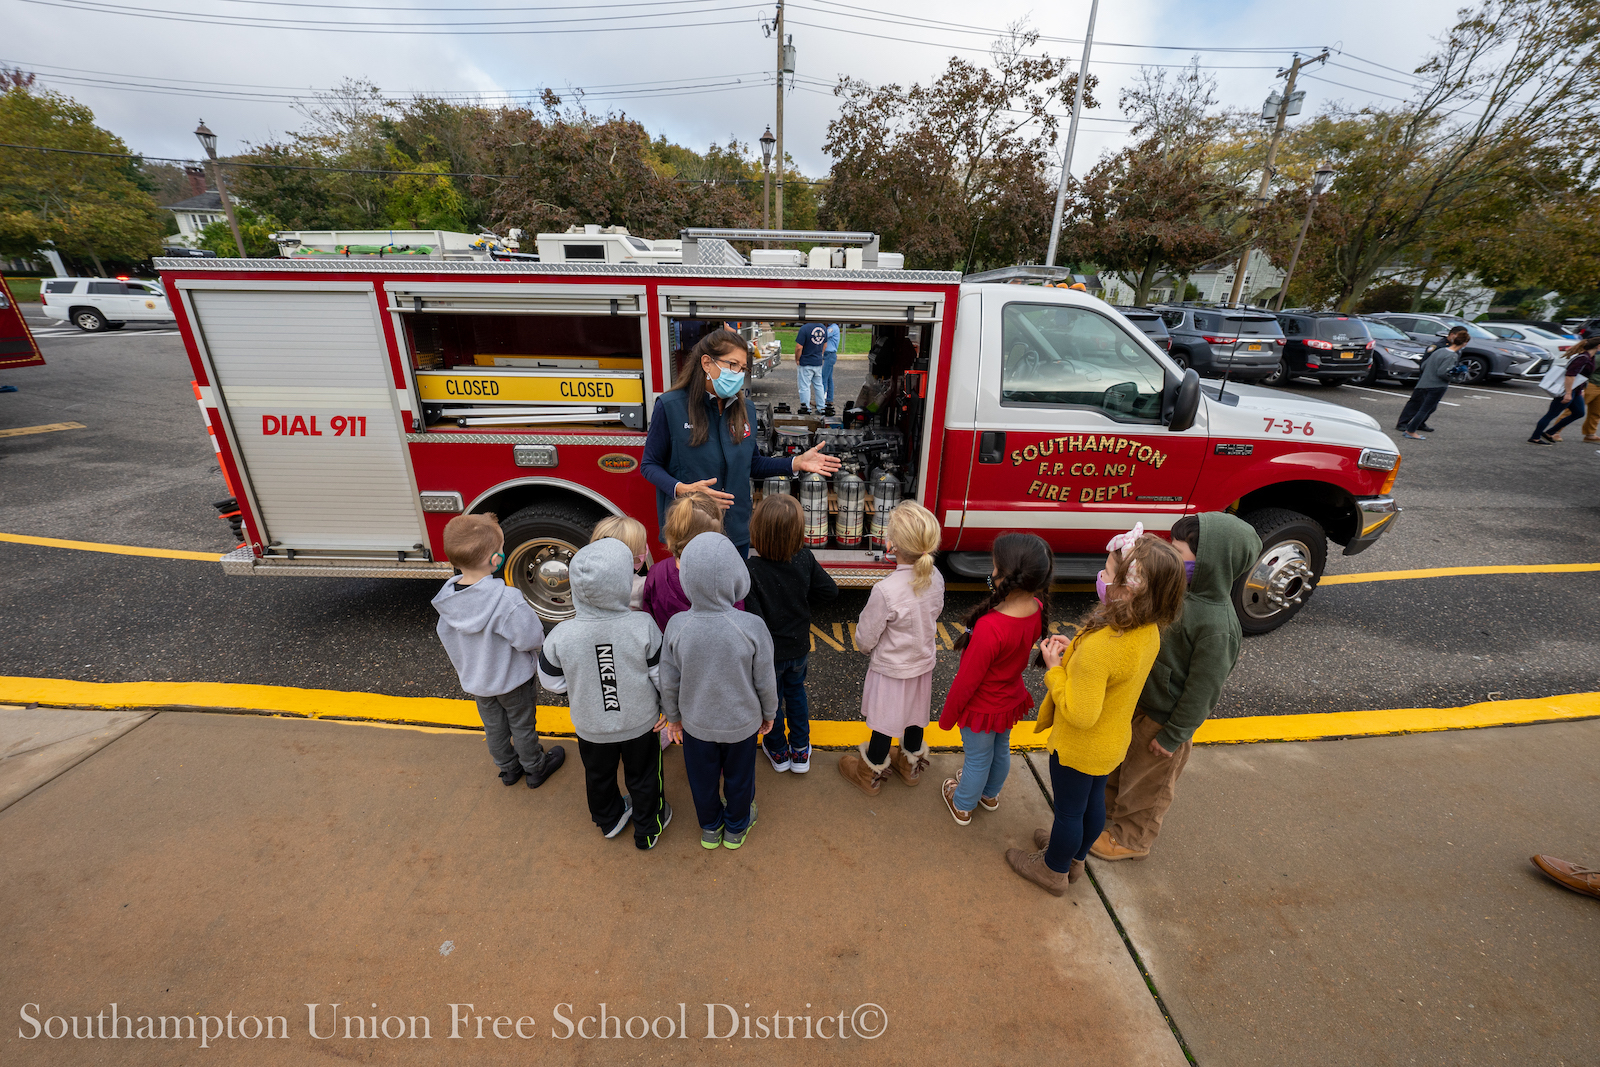 Southampton Elementary School students in grades pre-K to 3 learned about fire safety from the Southampton Fire Department on Oct. 22. During the visit, the students explored the fire department's equipment and heard from firefighters about safety protocols and fire safety.